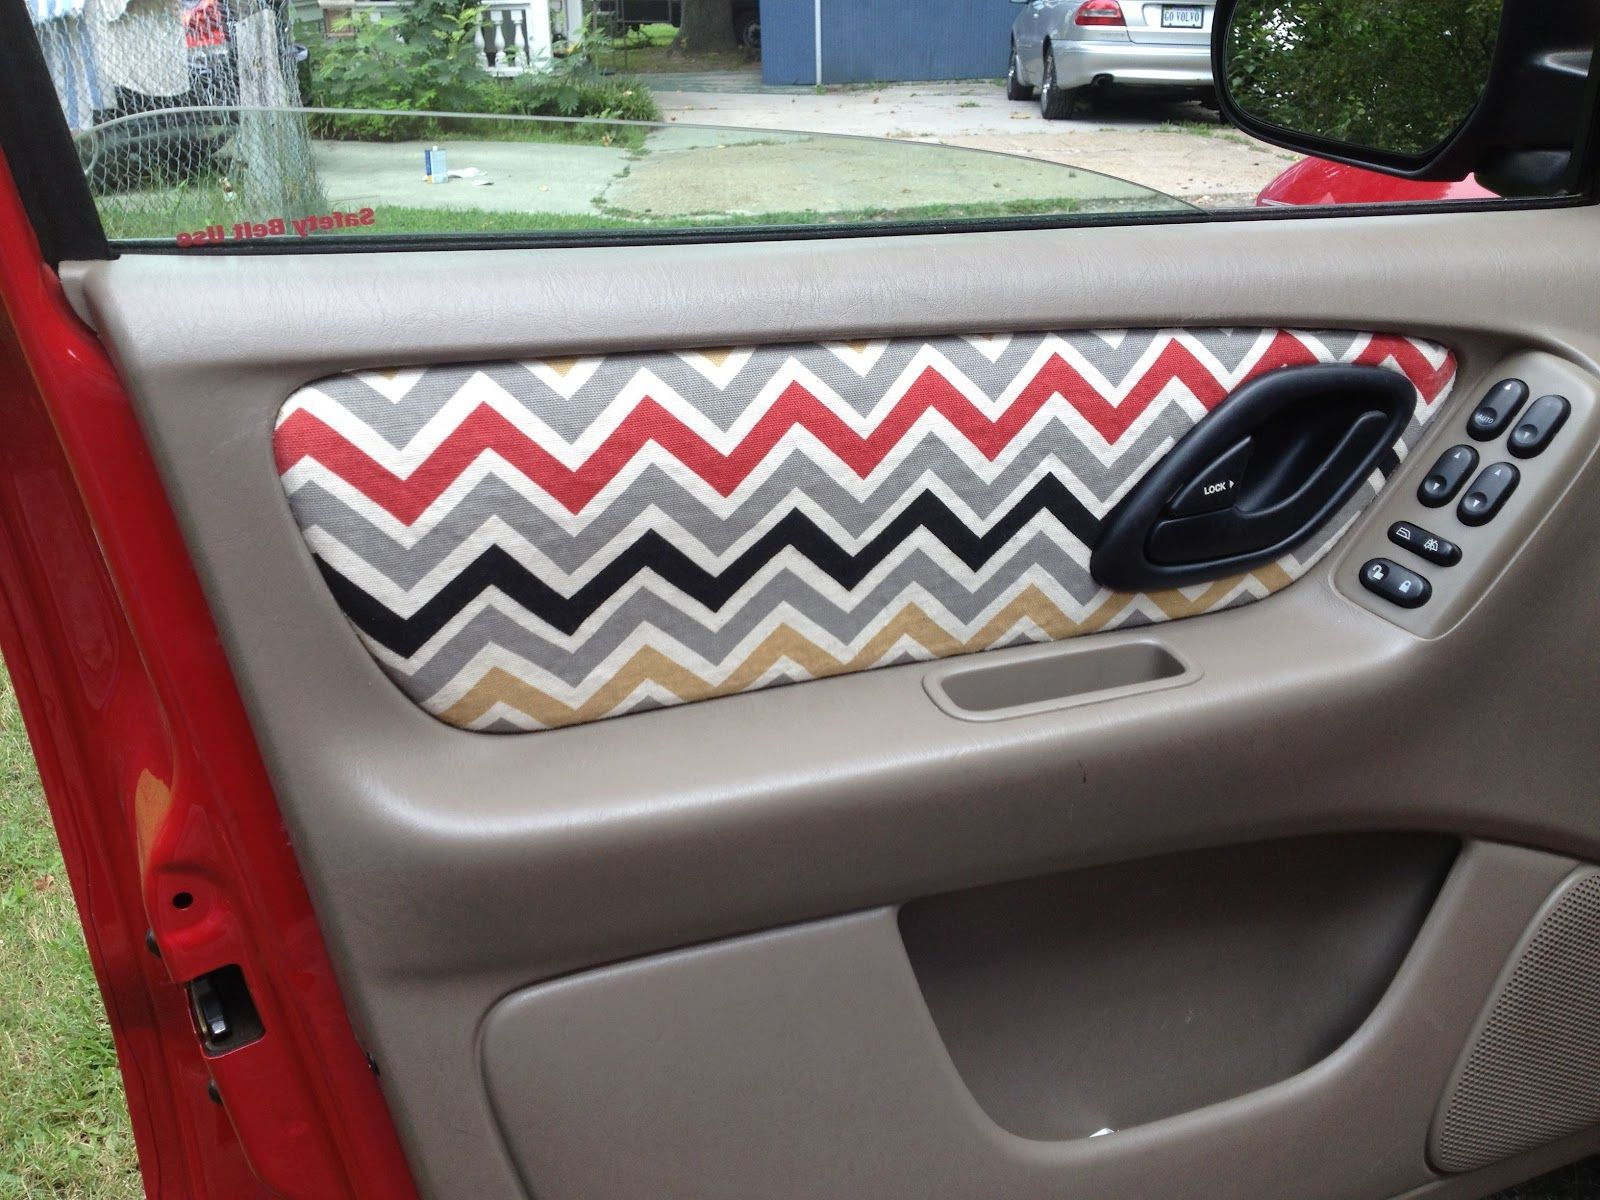 DIY cute fabric to cover worn-out, faded, or melted standard fabric in your car. Or just because?